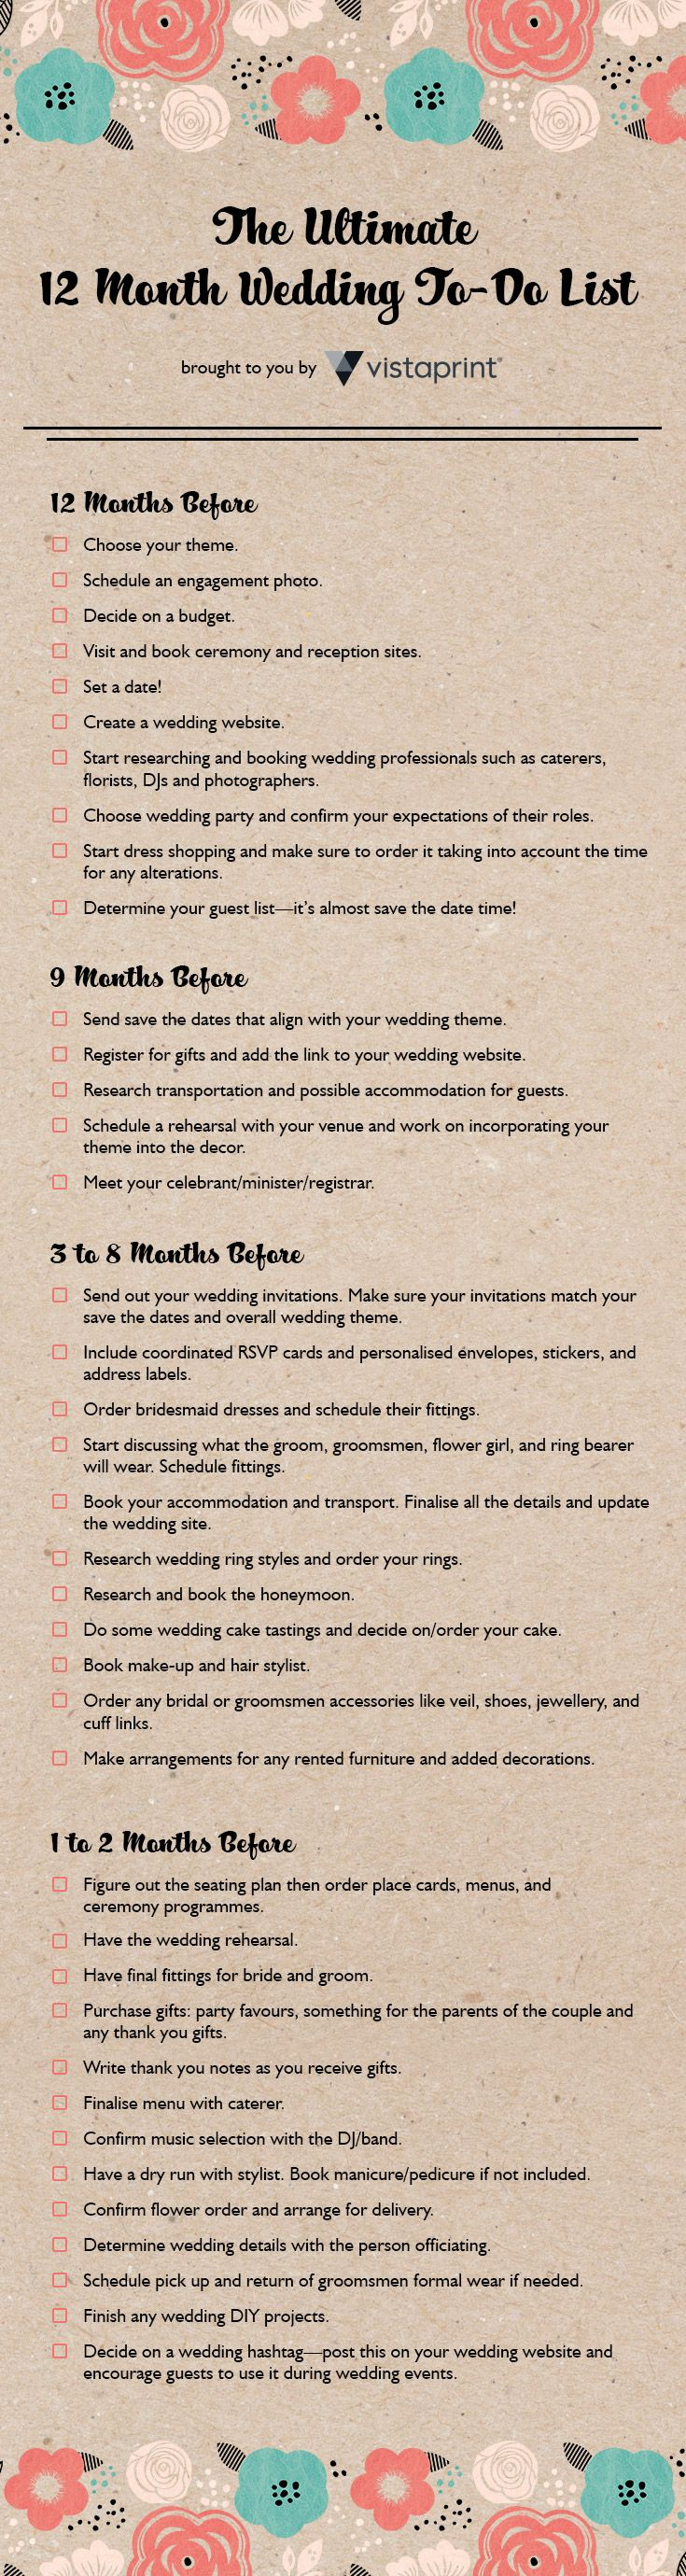 This might be helpful one day - VistaPrint's wedding planning checklist.